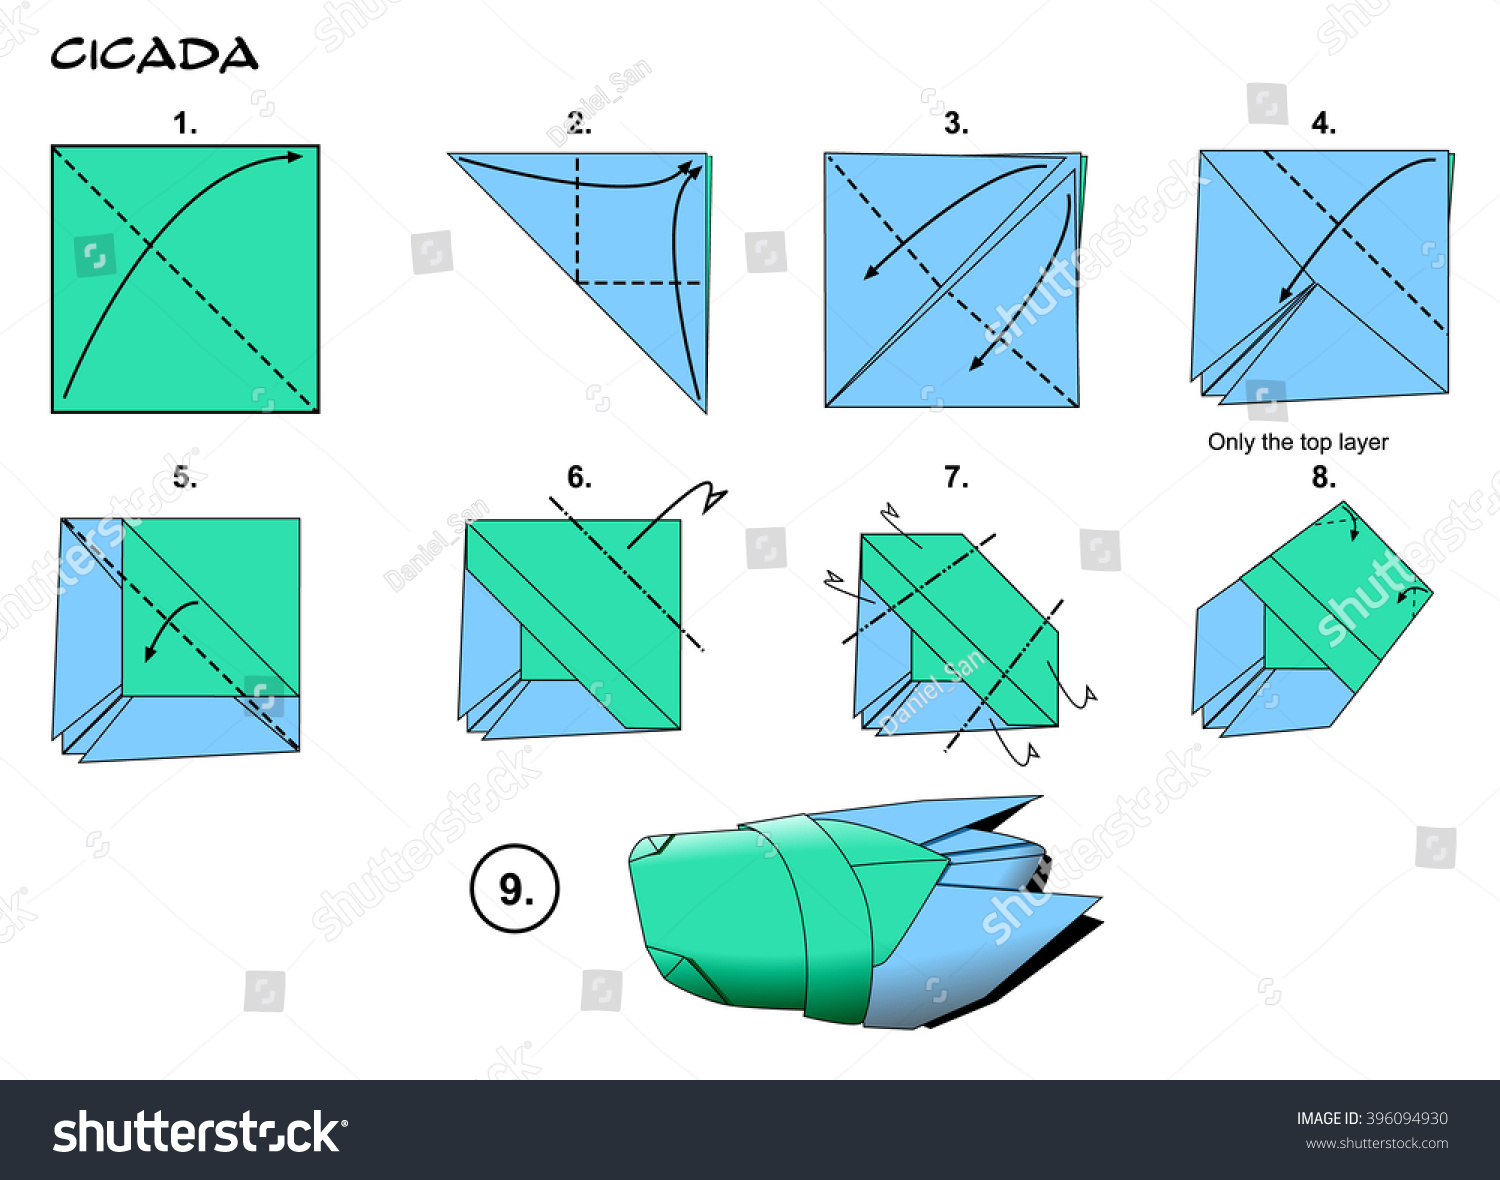 Origami Insect Traditional Cicada Diagram Instructions Stock Steps Paper Folding Art